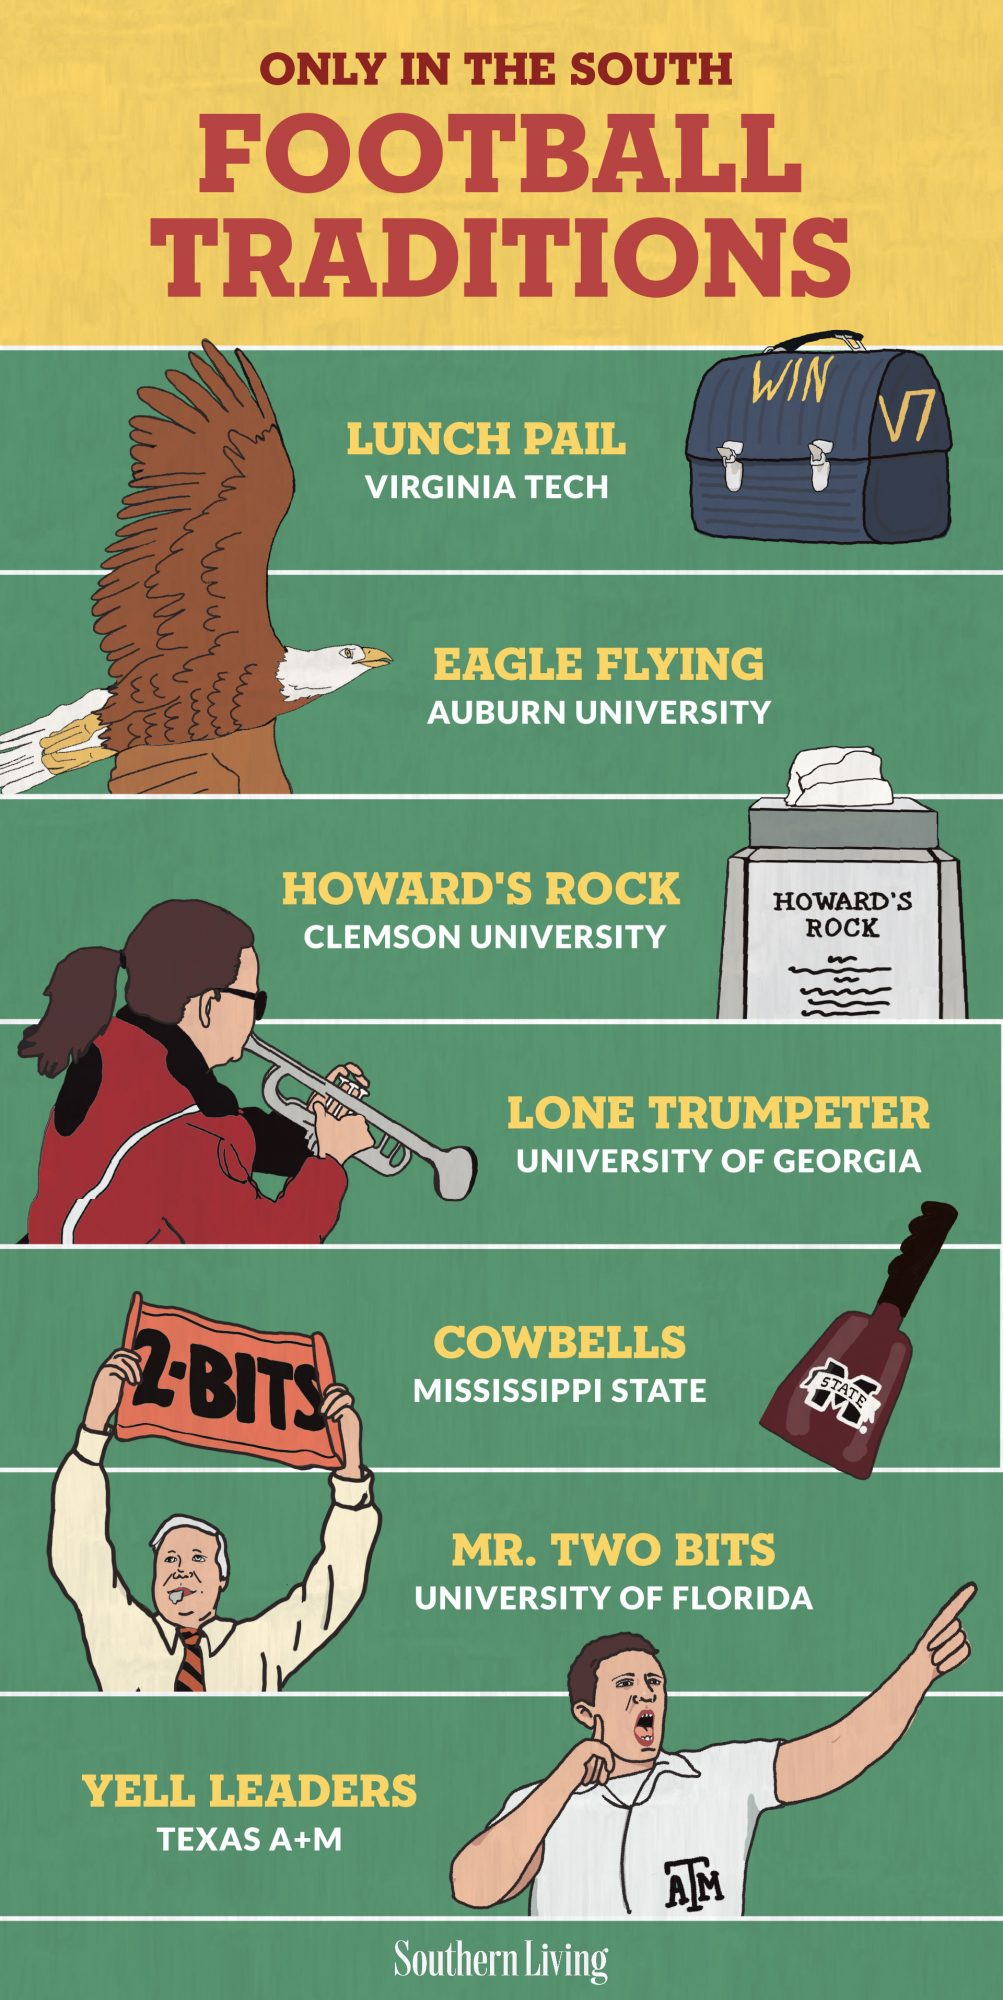 Southern College Football Traditions: Virginia Tech's Lunch Pail; Eagle Flying at Auburn; Howard's Rock at Clemson; Georgia's Lone Trumpeter; Cowbells at Mississippi State; Florida's Mr. Two Bits; Yell Leaders at Texas A&M